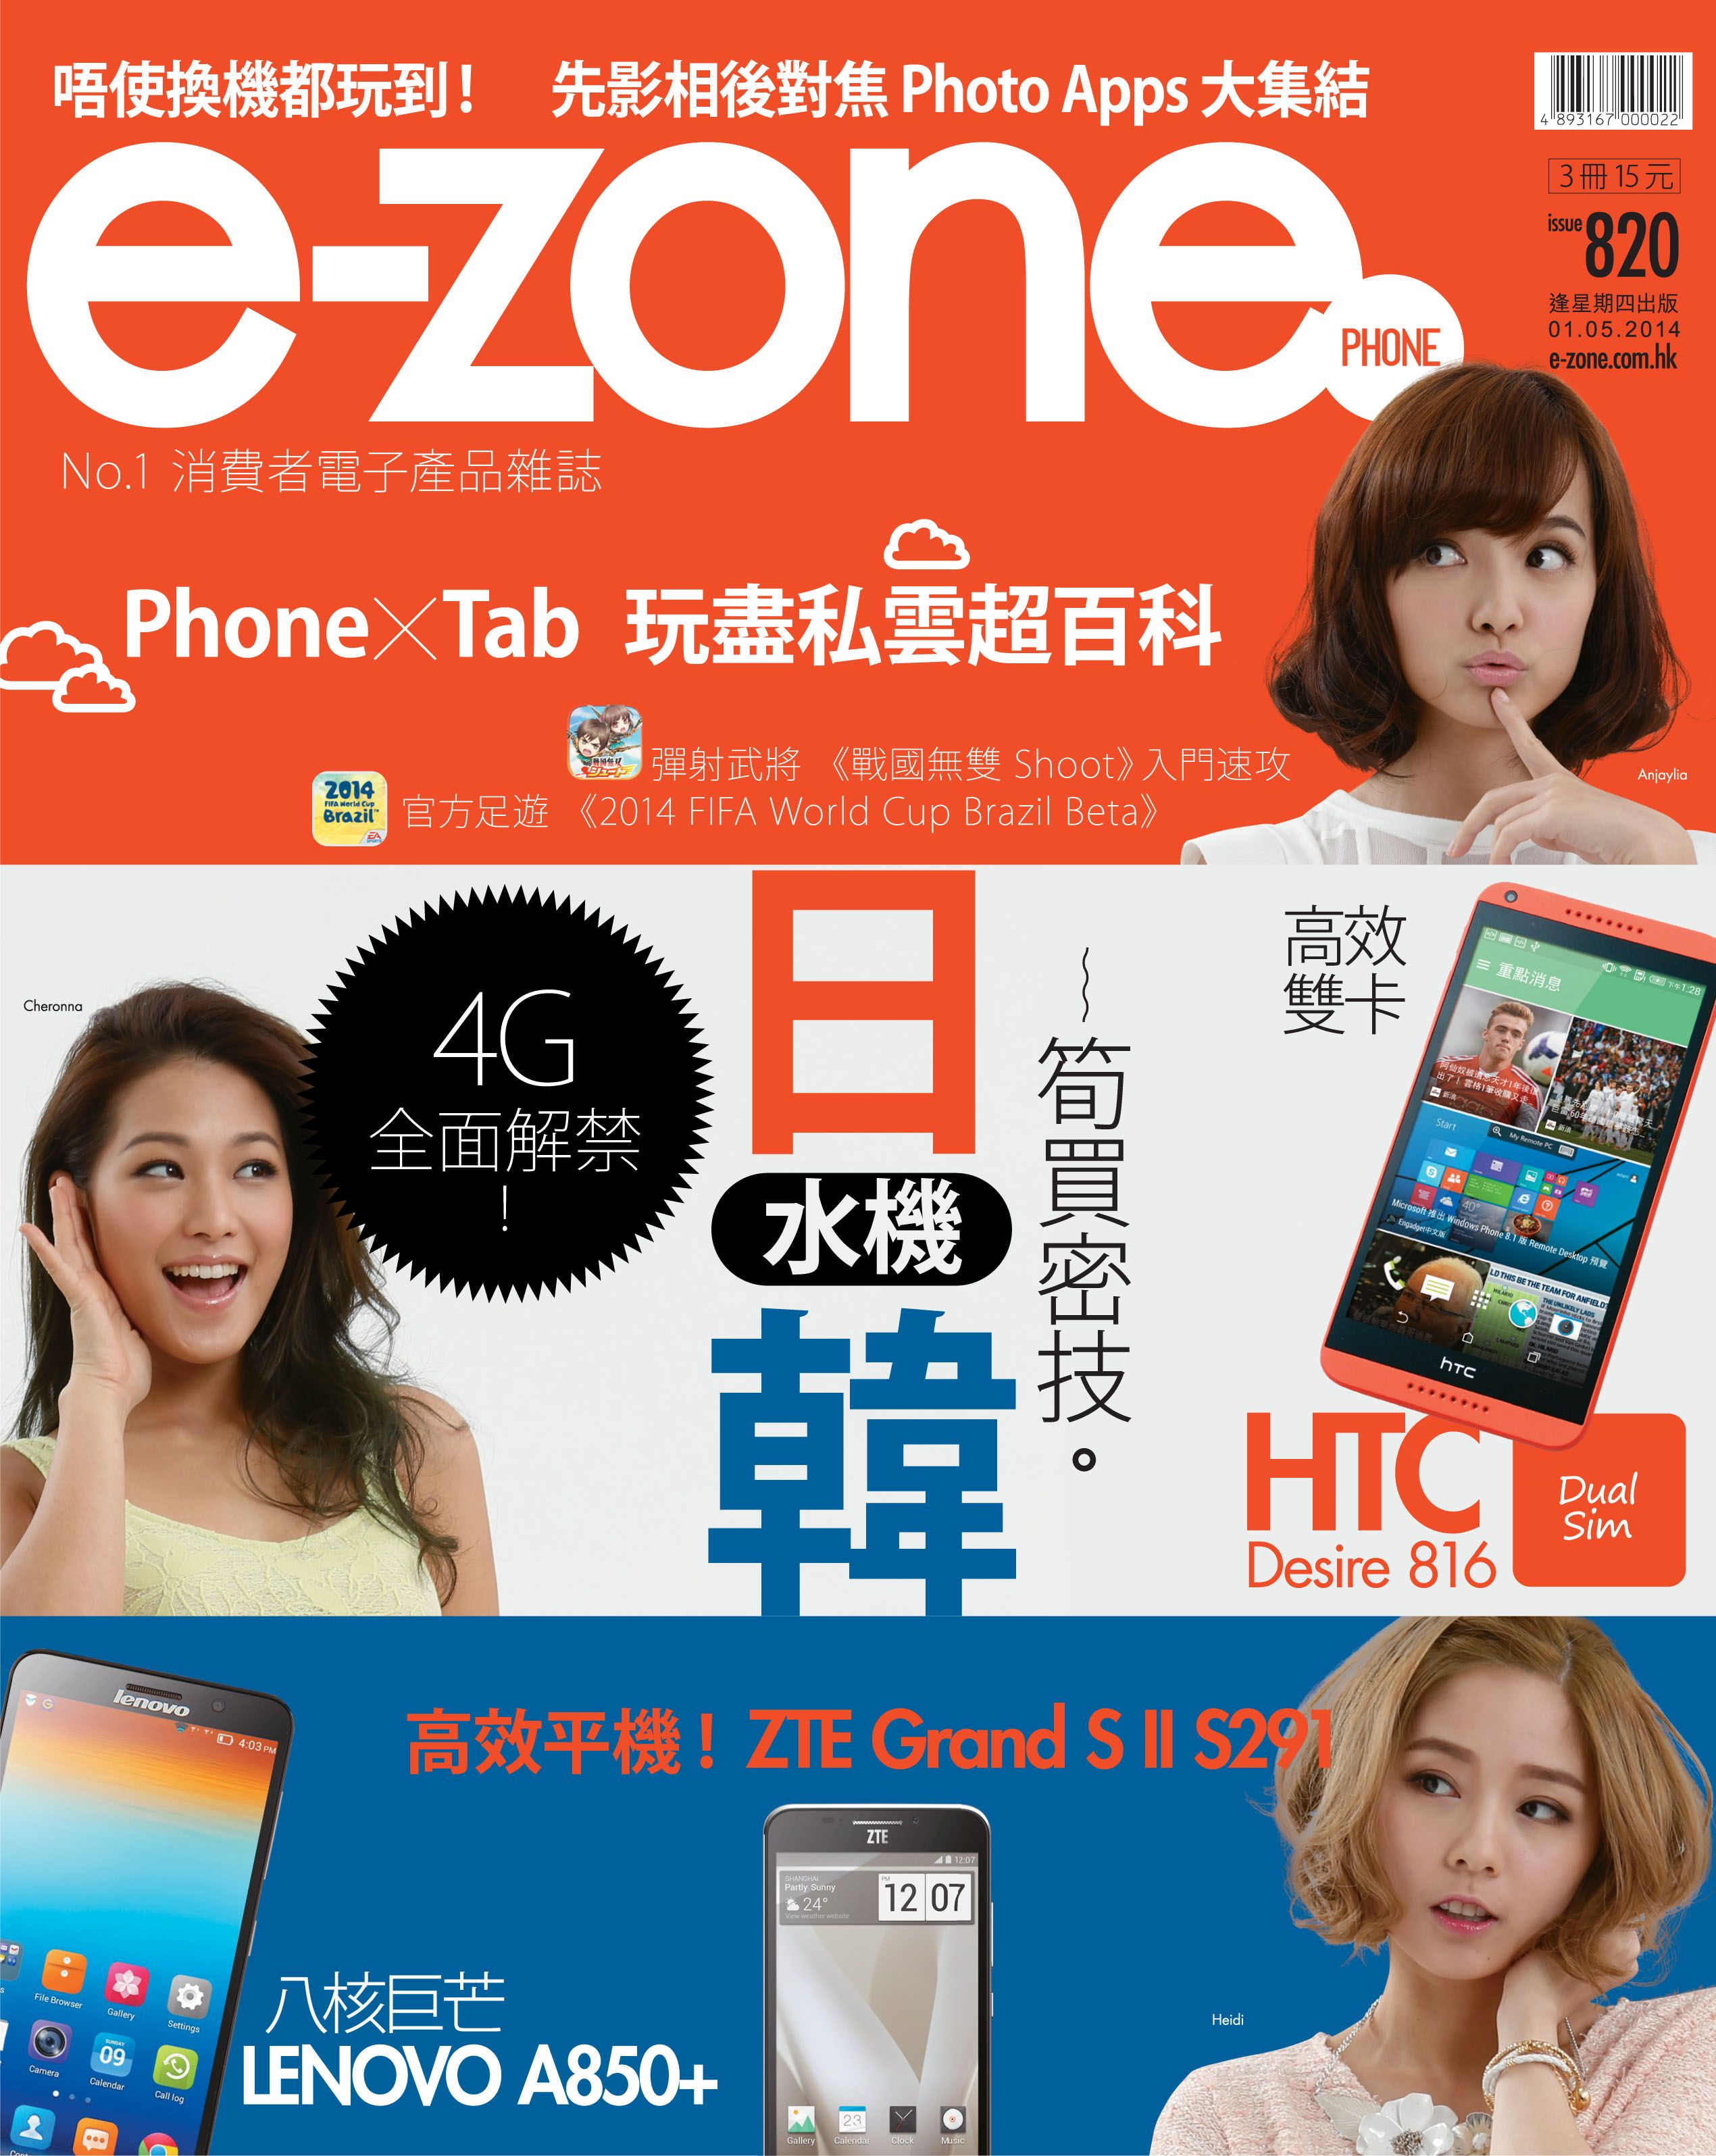 Issue 820 PHONE (30 Apr 2014)